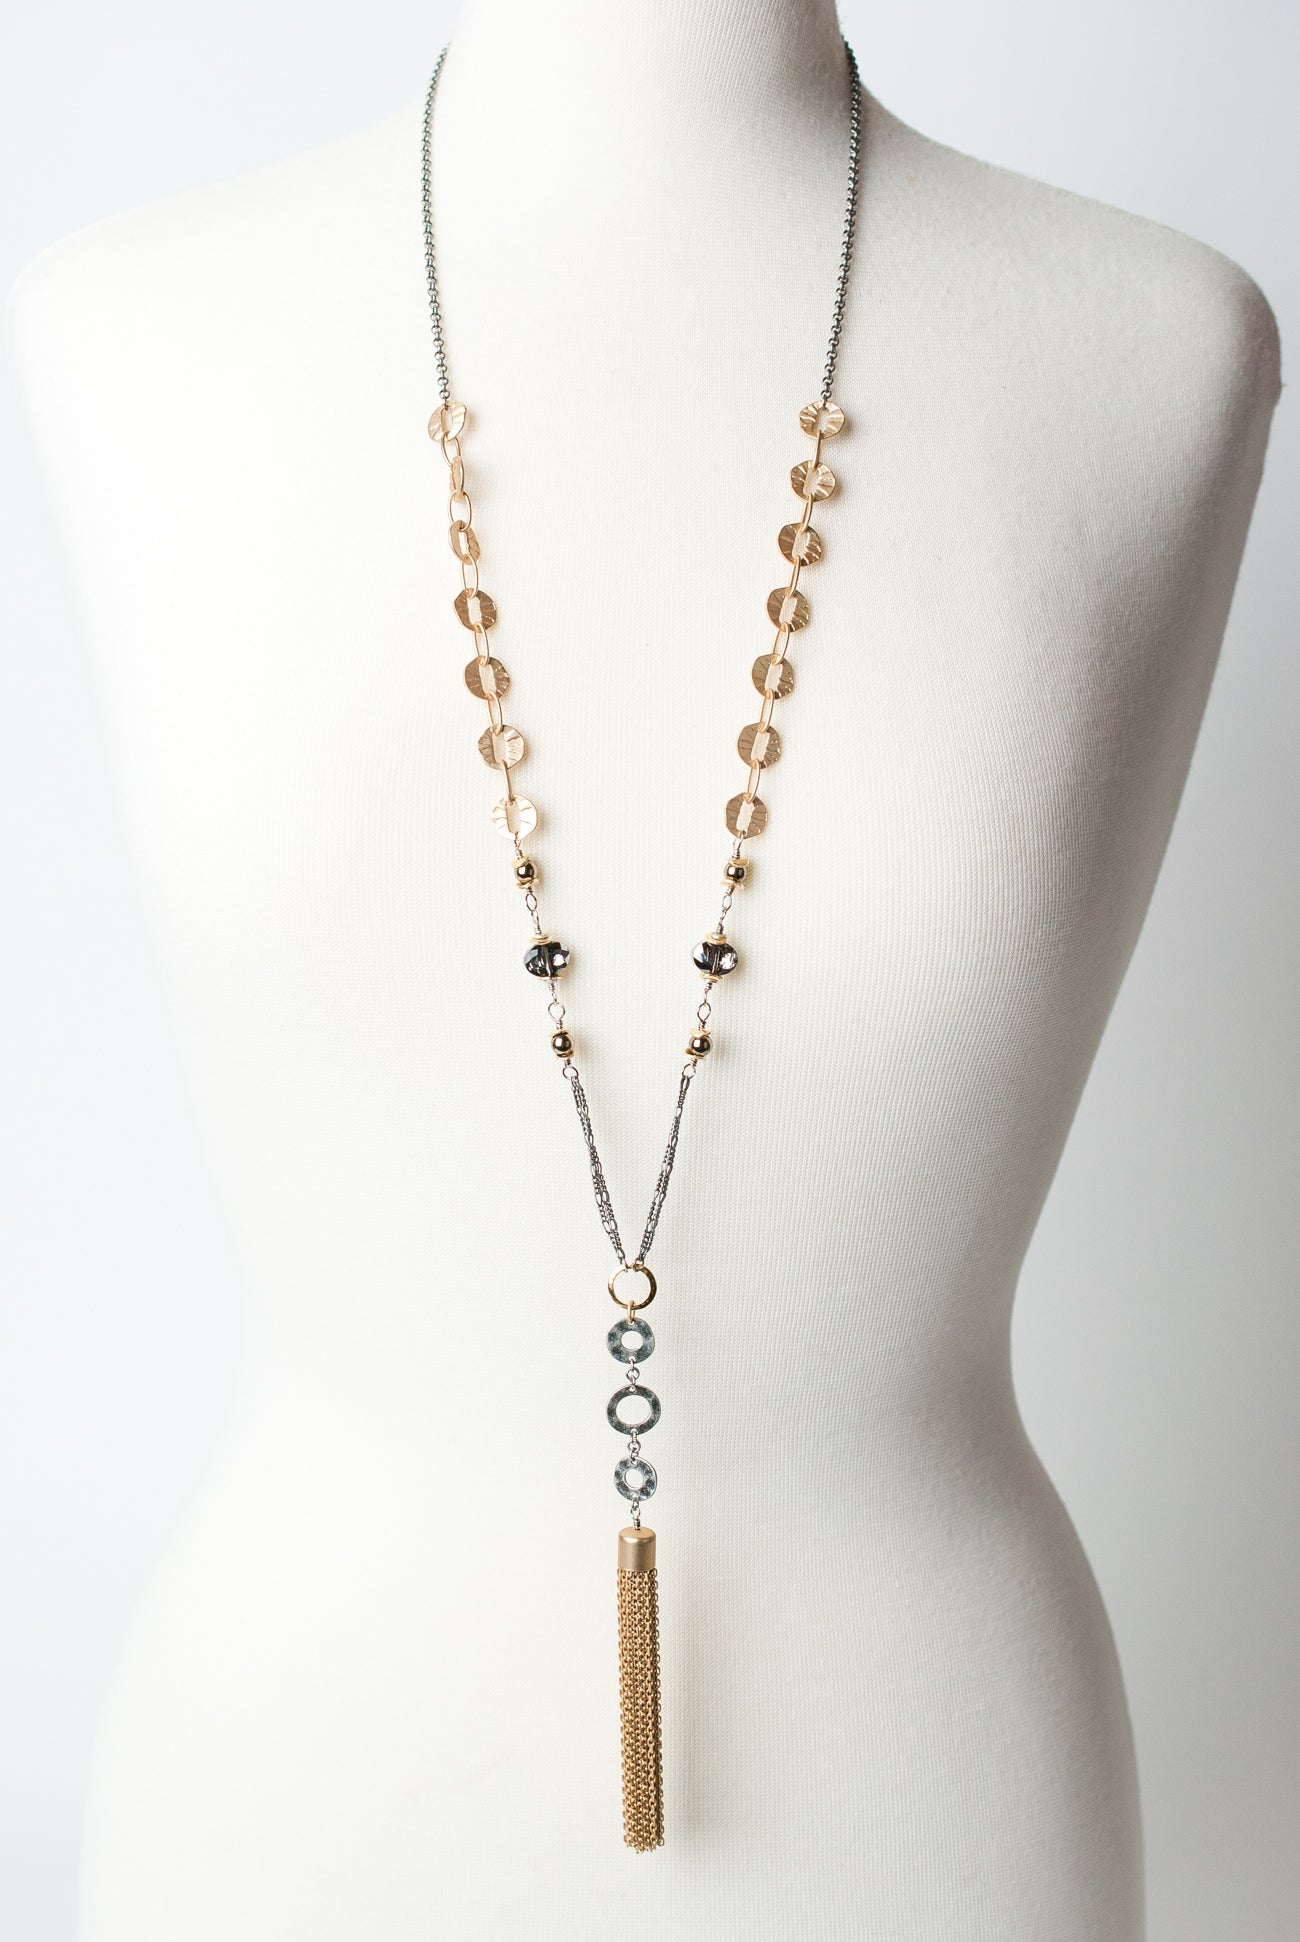 "Silver & Gold 33.5-35.5"" Gold Tassel Necklace"